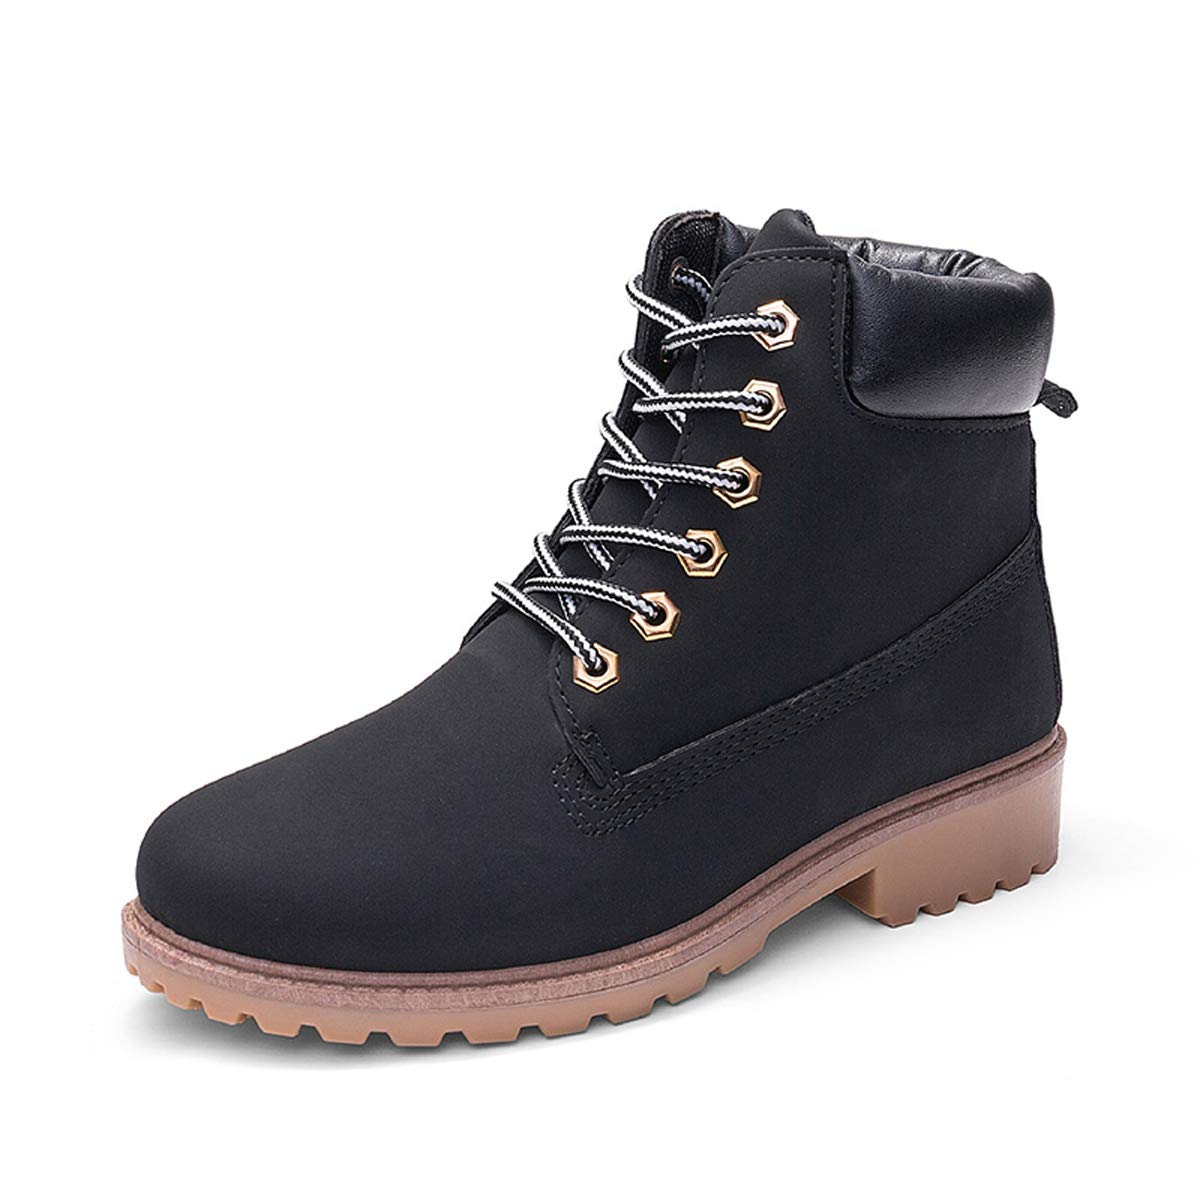 9ea6ec27160 VFDB Womens Fashion Work Shoes Winter Ankle High Lace Up Combat Military  Boots